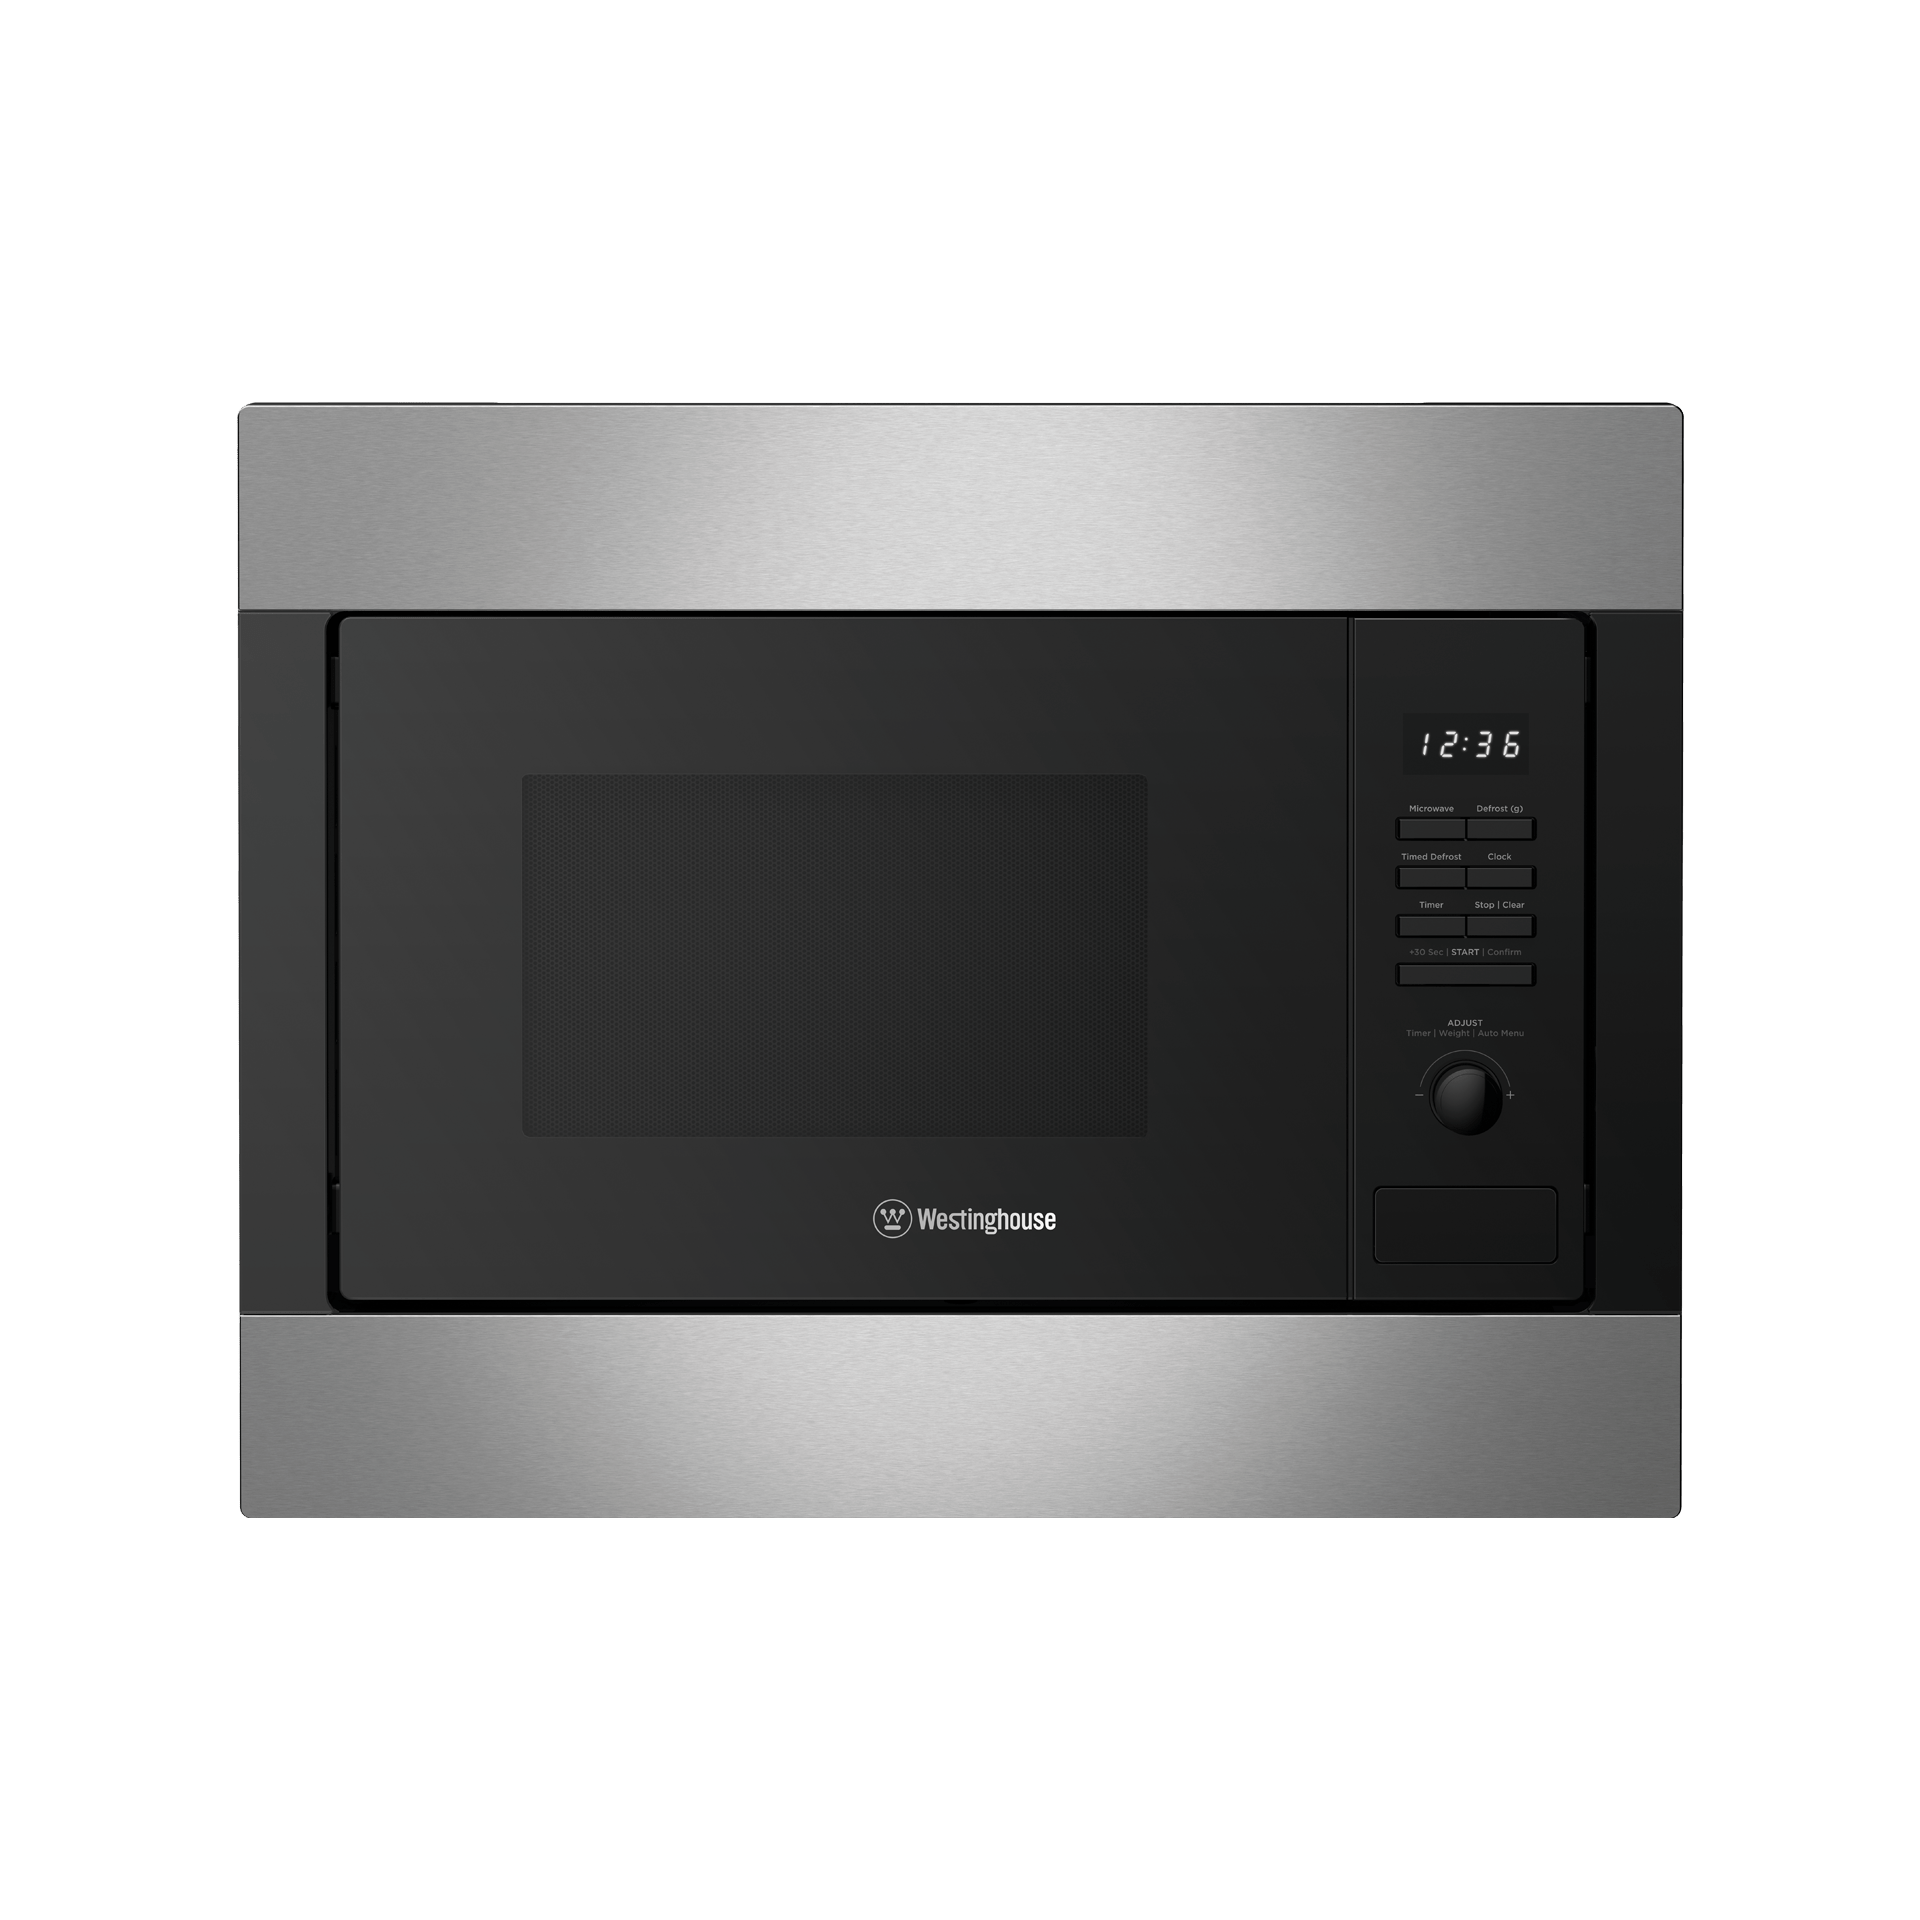 wmb2522sc 25l built in microwave stainless steel